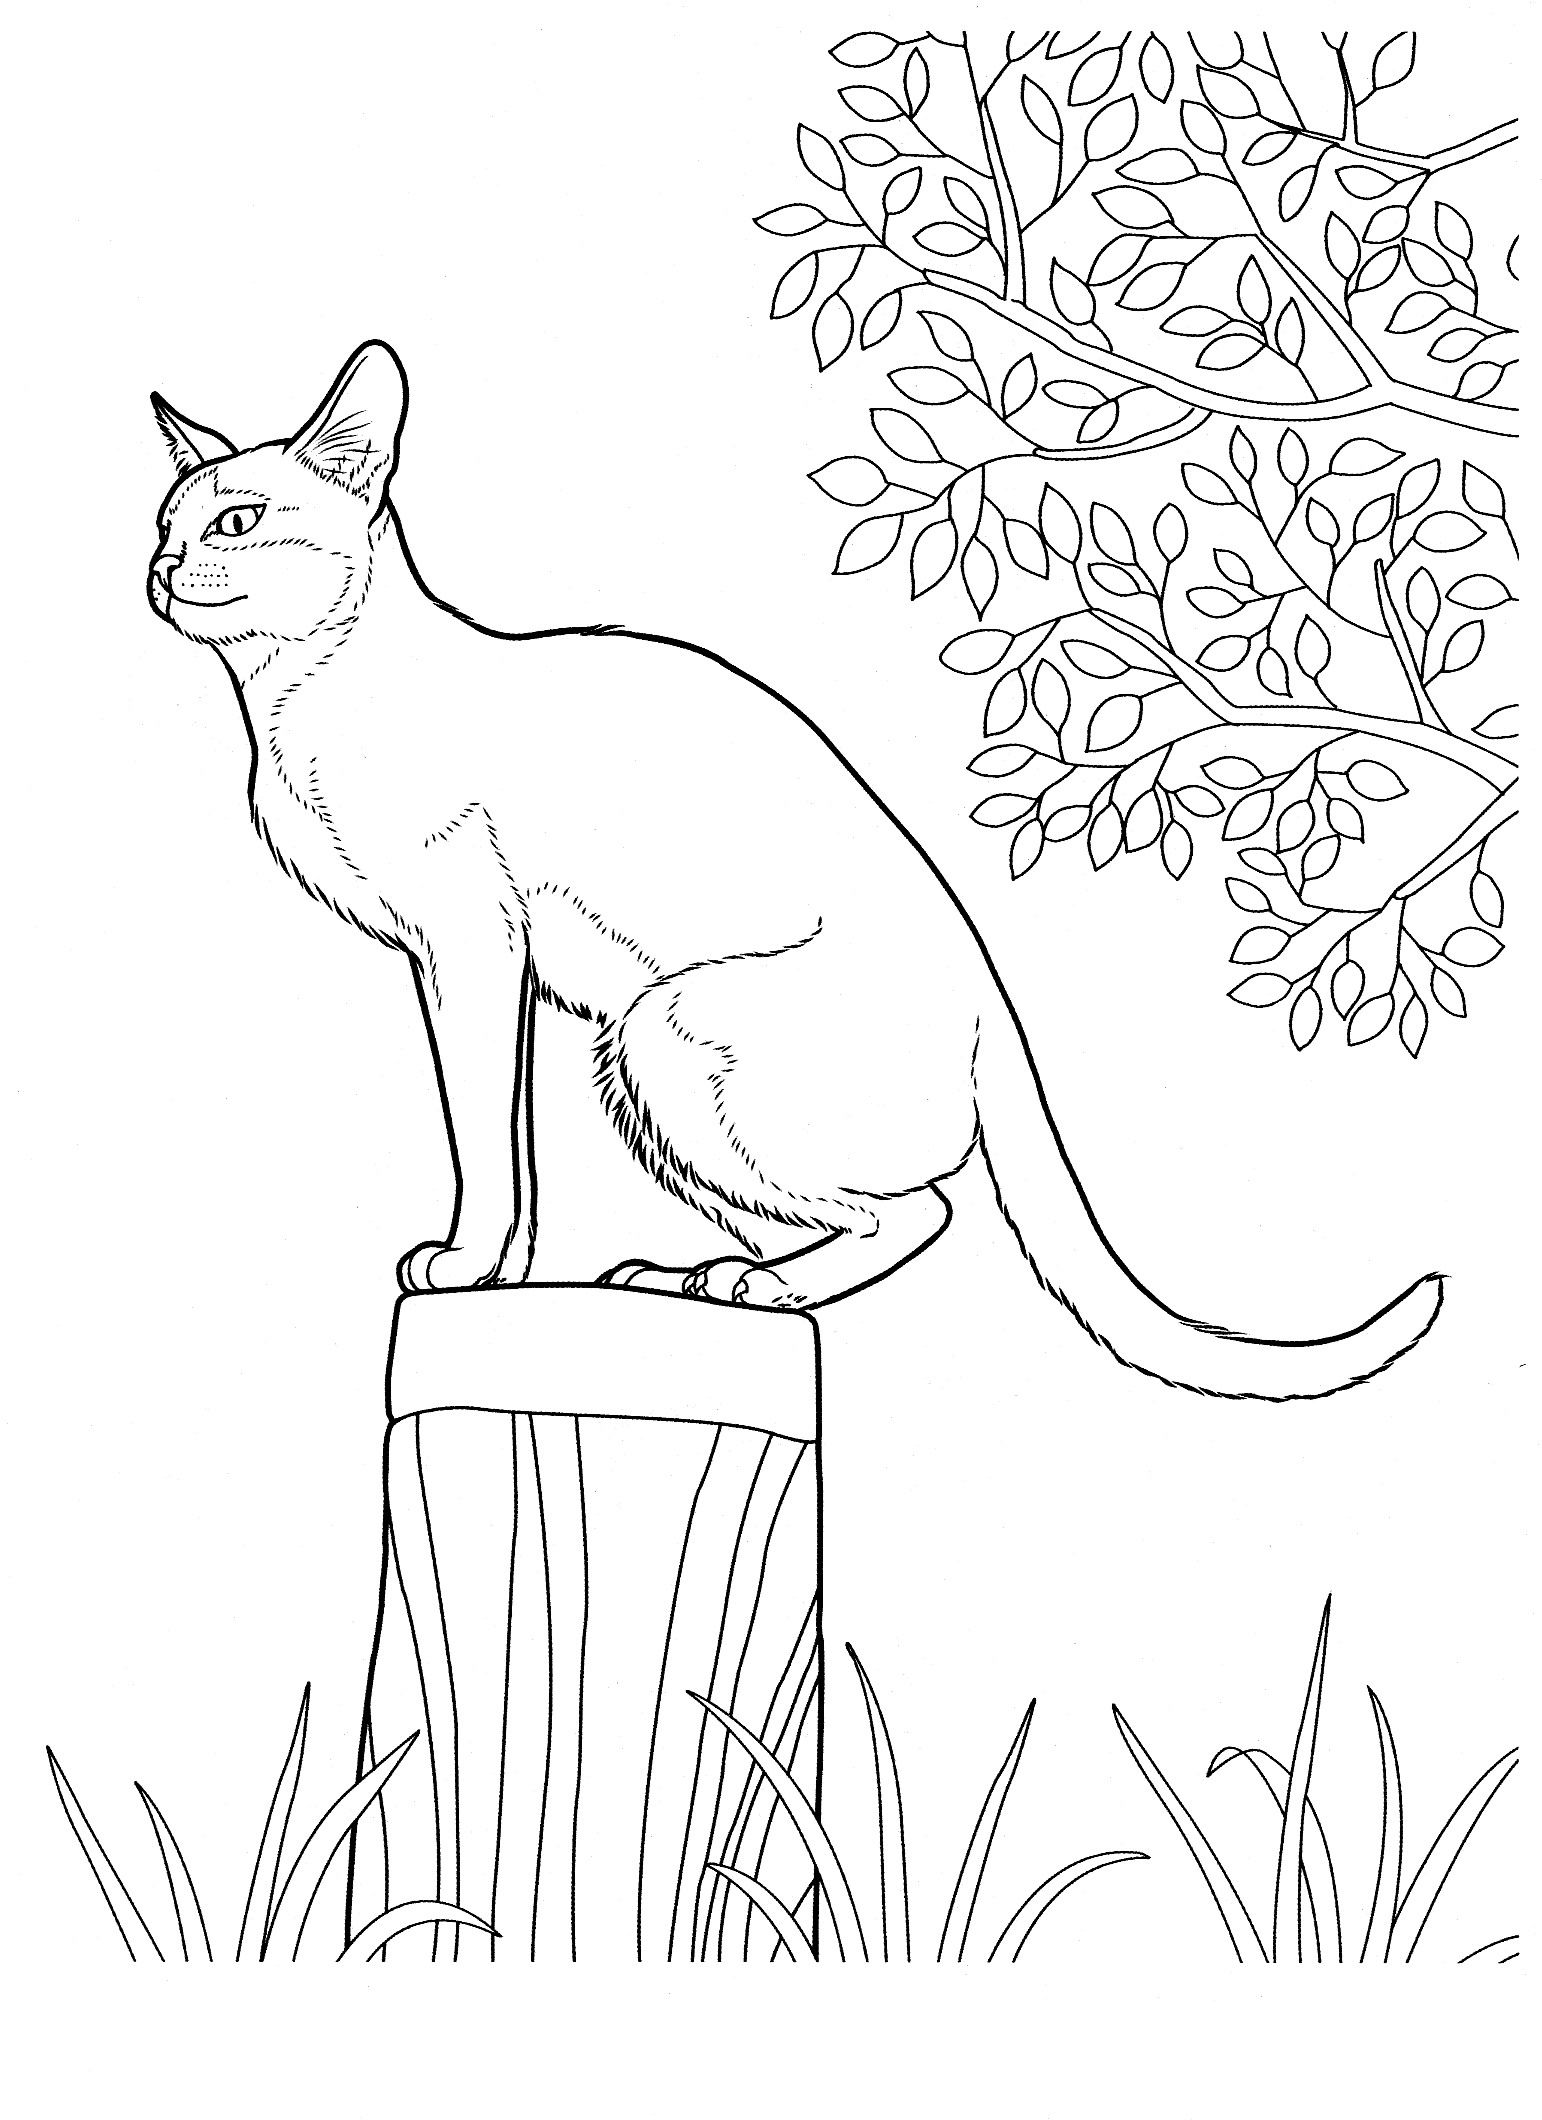 Cat 12 Cats Coloring Pages For Teens And Adults Cat Coloring